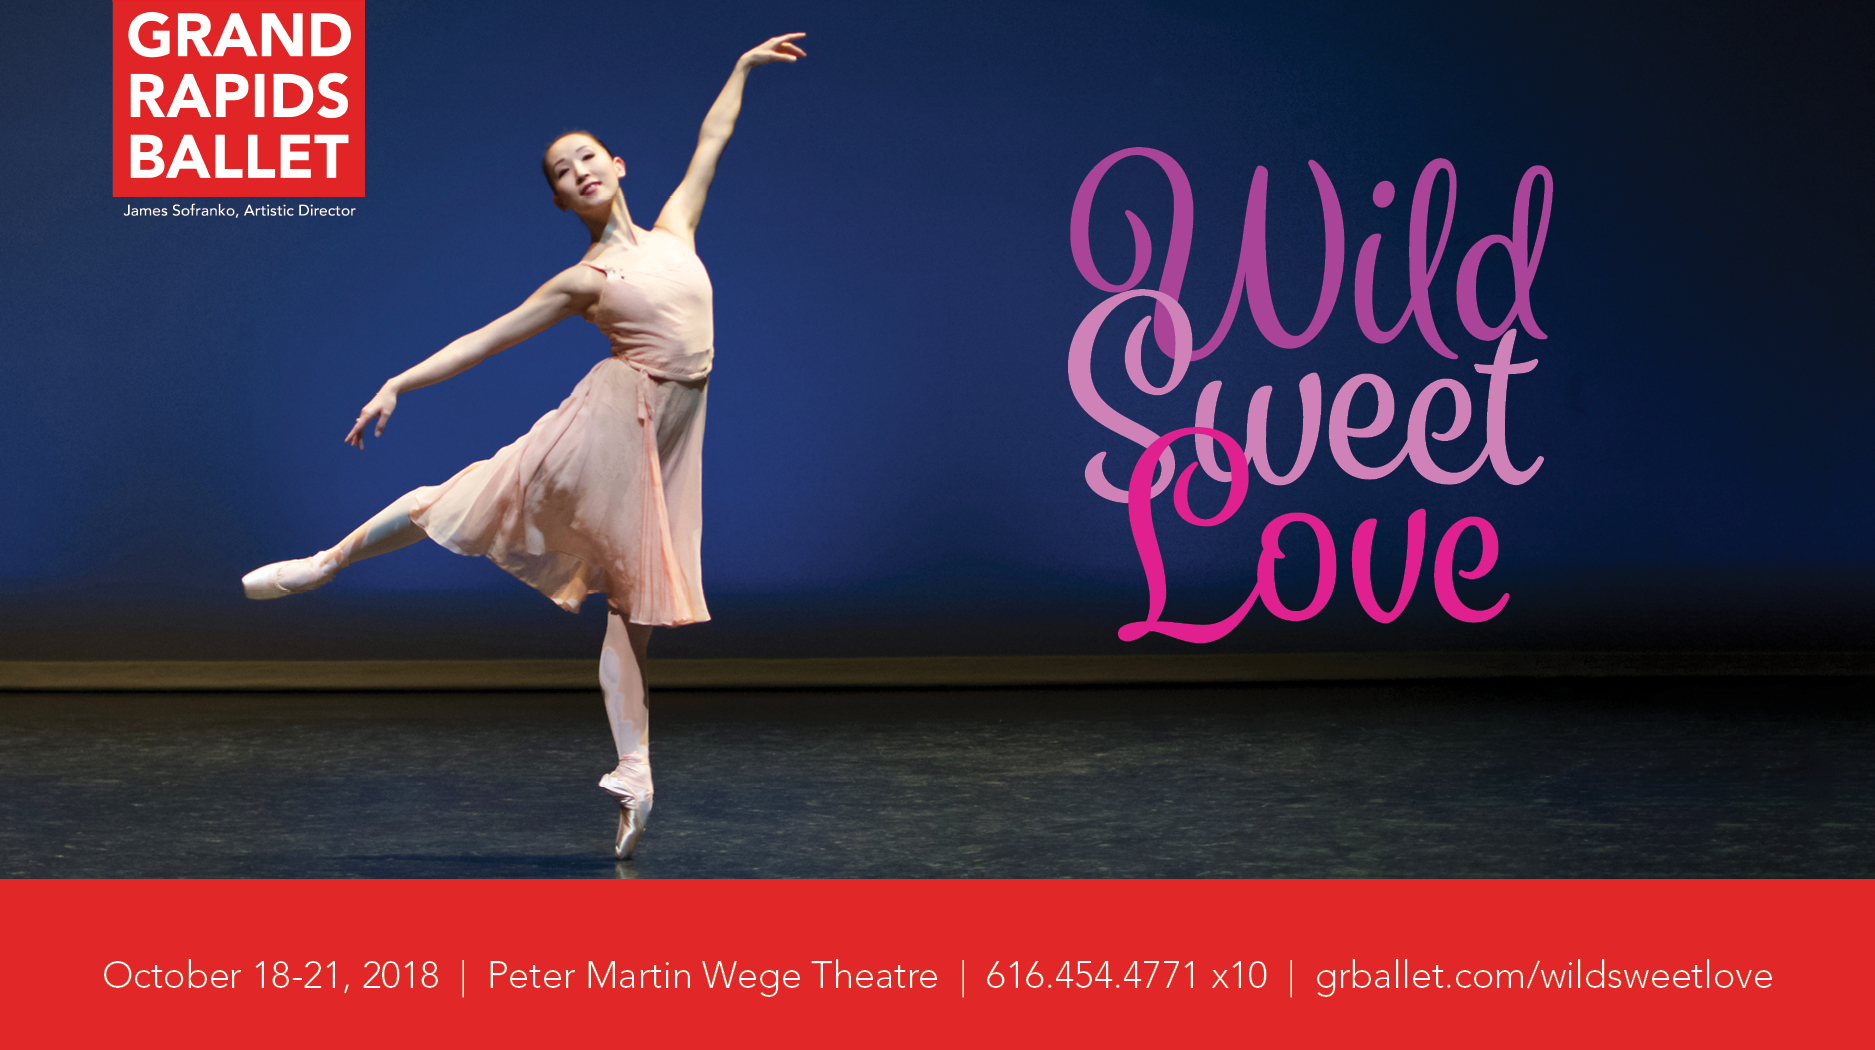 Review: Grand Rapids Ballet delivers a fantastic performance of 'Wild Sweet Love'